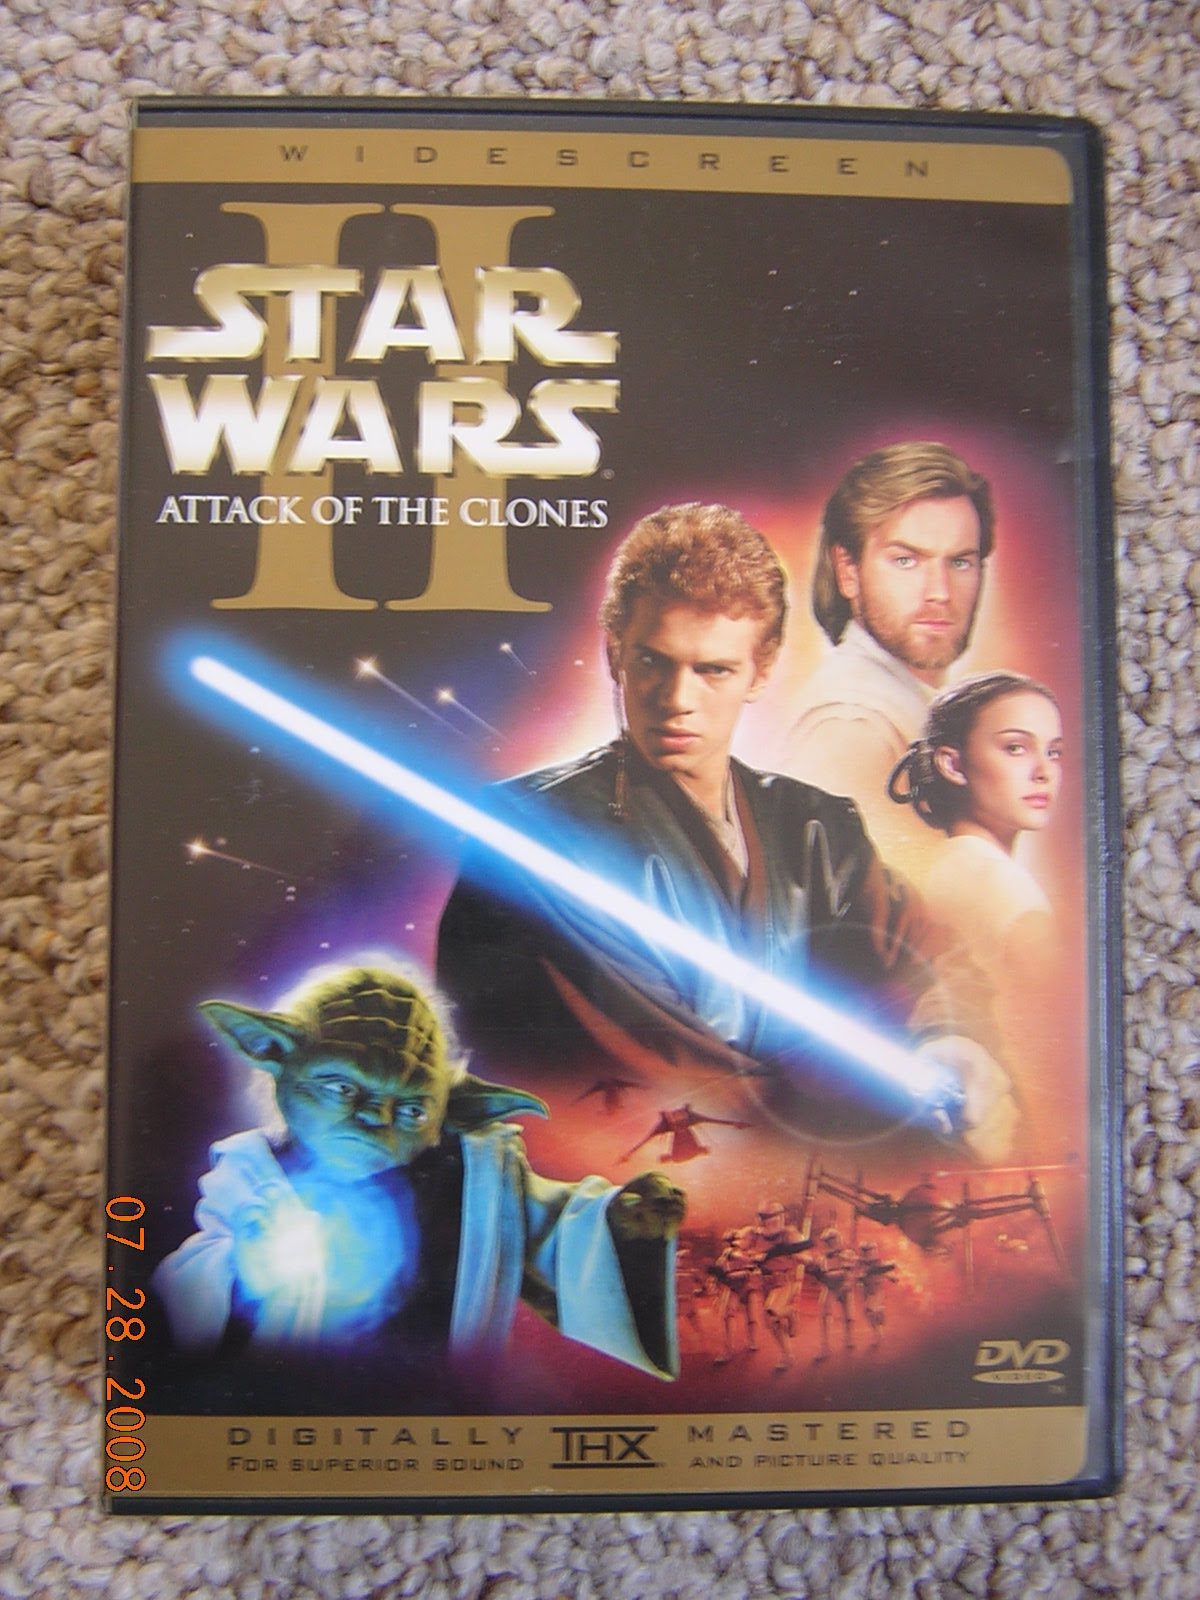 Buy Cheap DVDs - We Price Compare Blu-ray DVDs New DVDs and Used DVD Sites